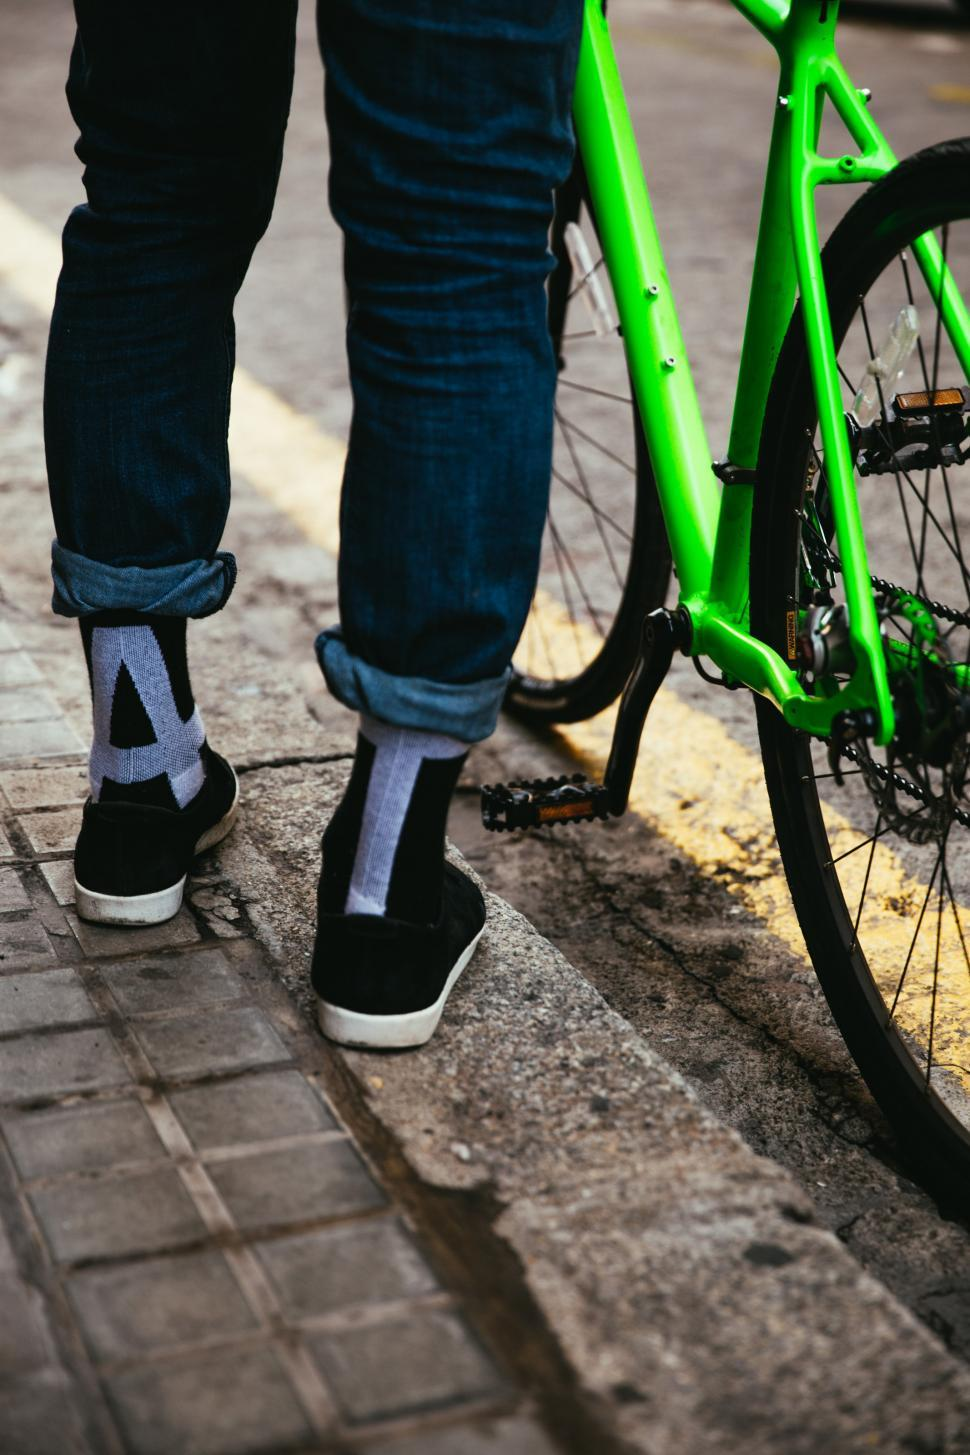 Download Free Stock HD Photo of A biker s feet with green bicycle Online